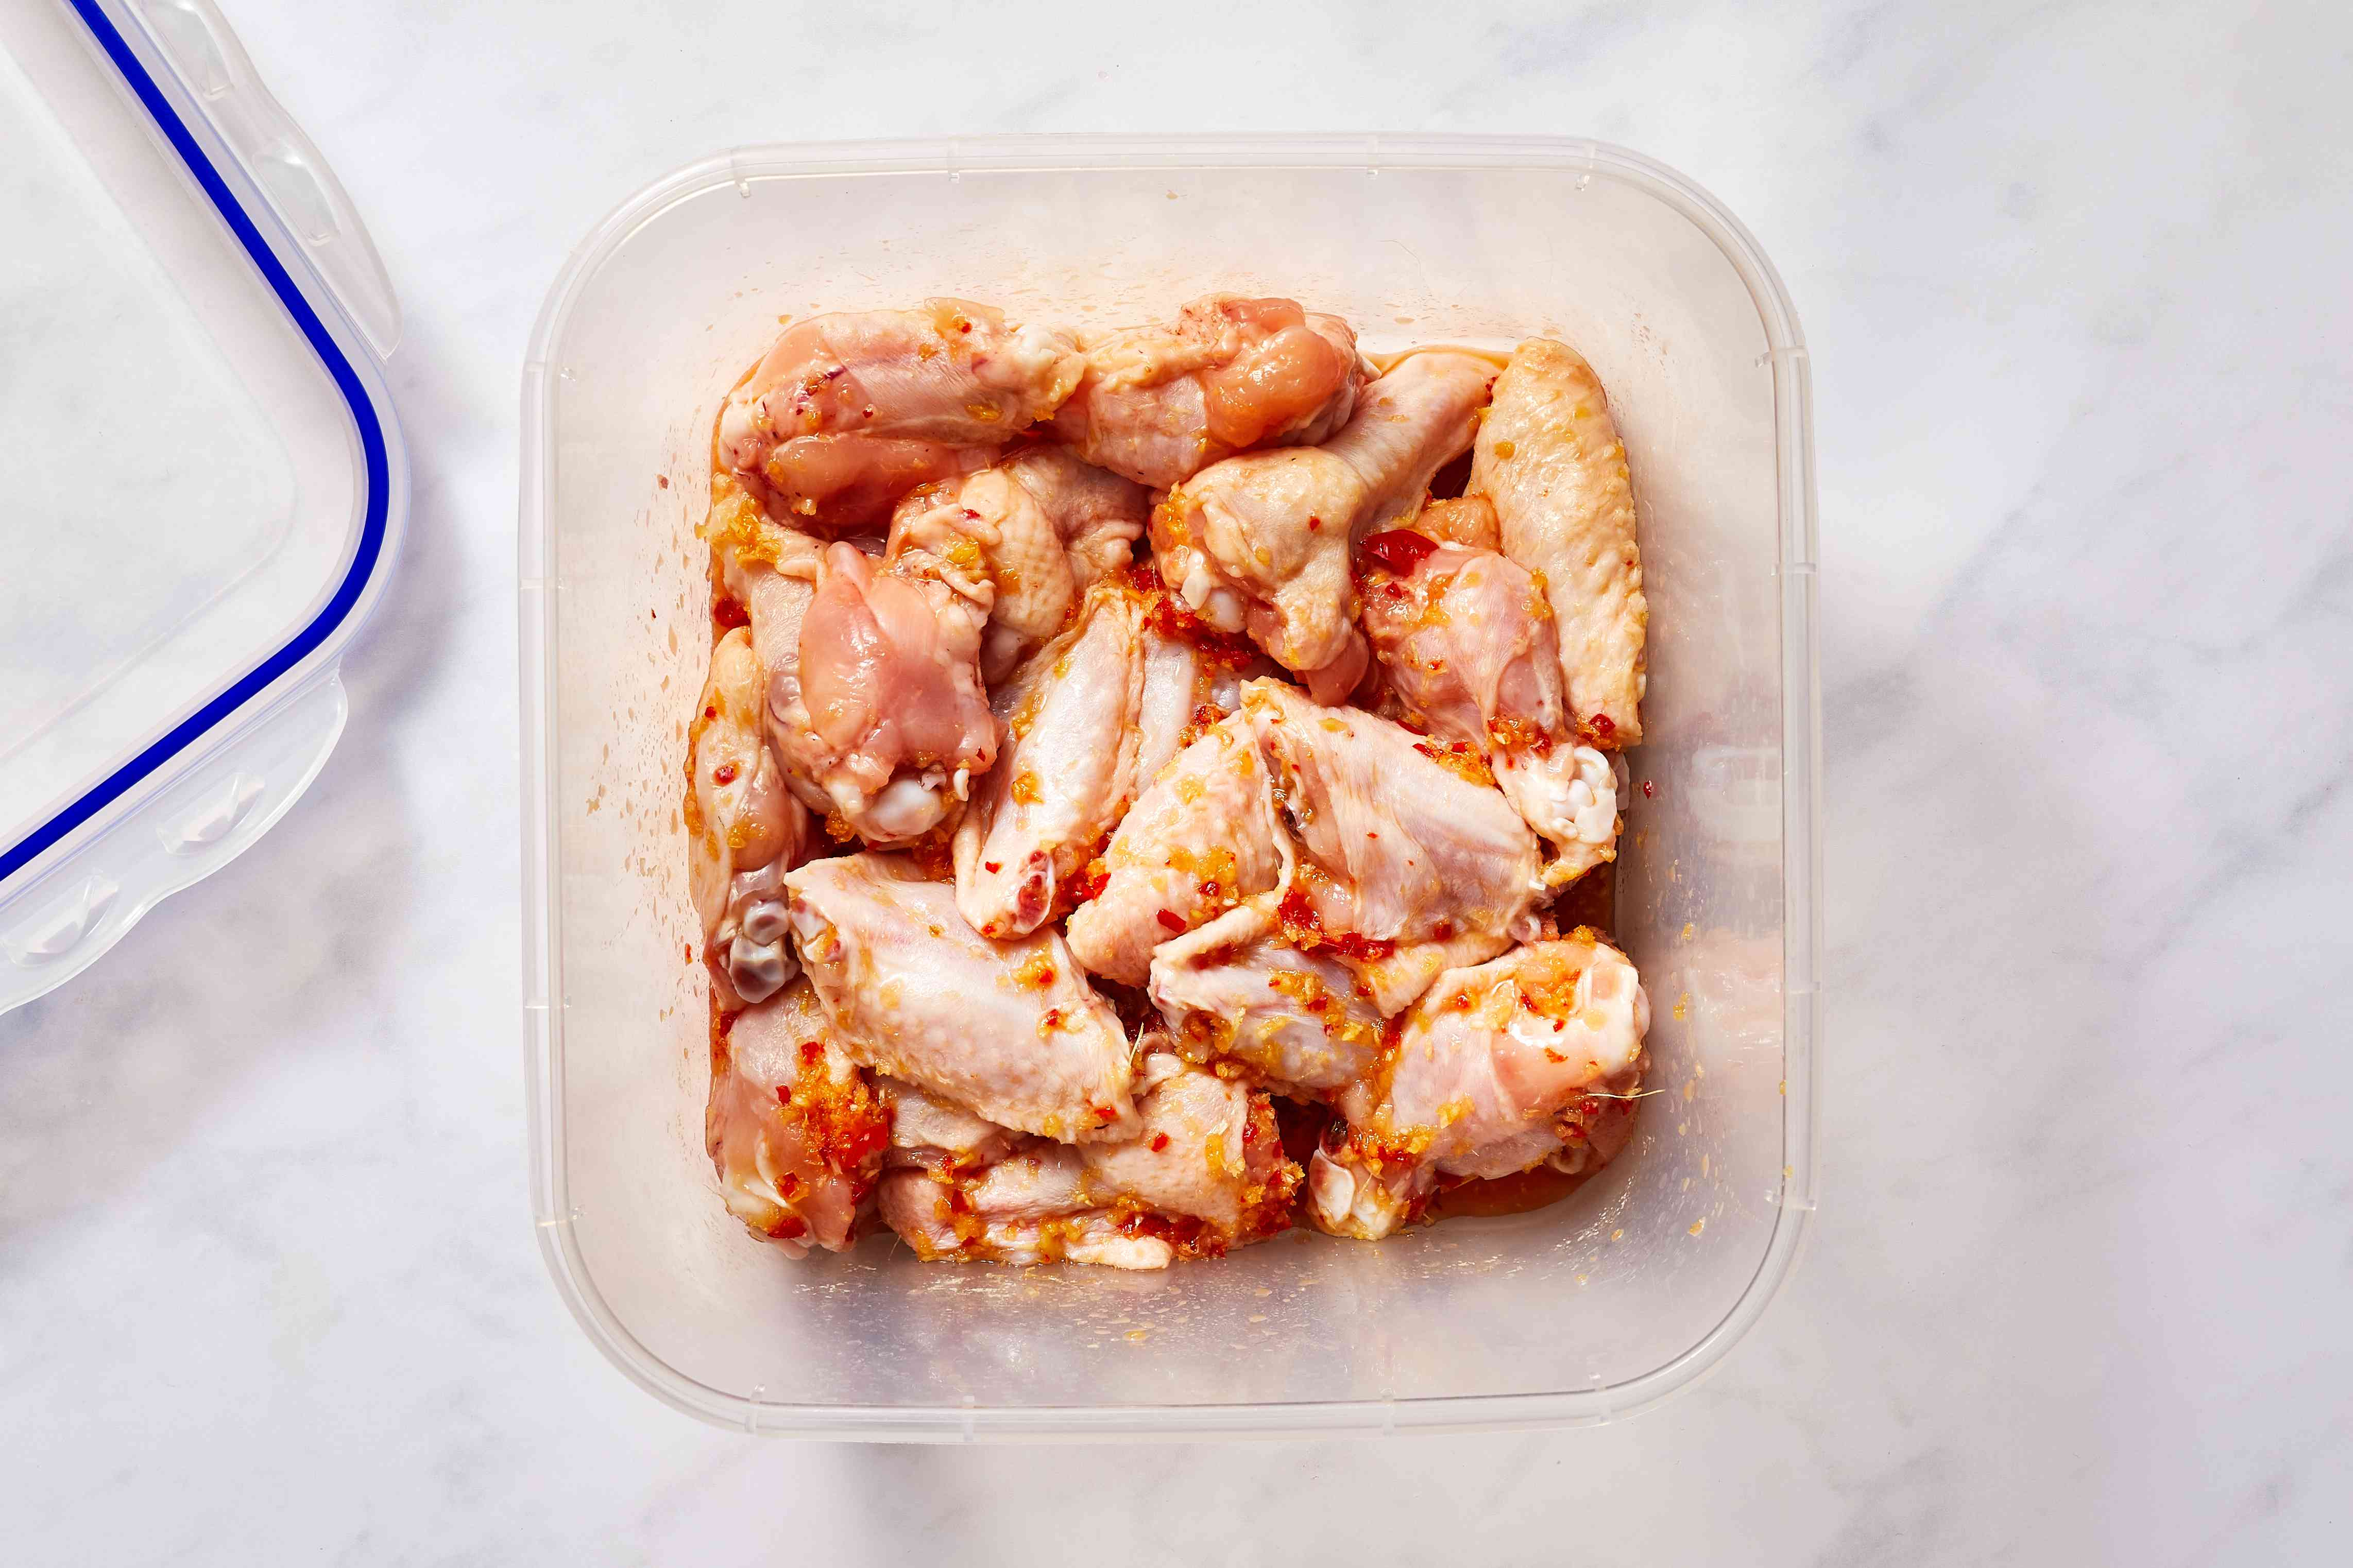 chicken wings in a marinade in a container